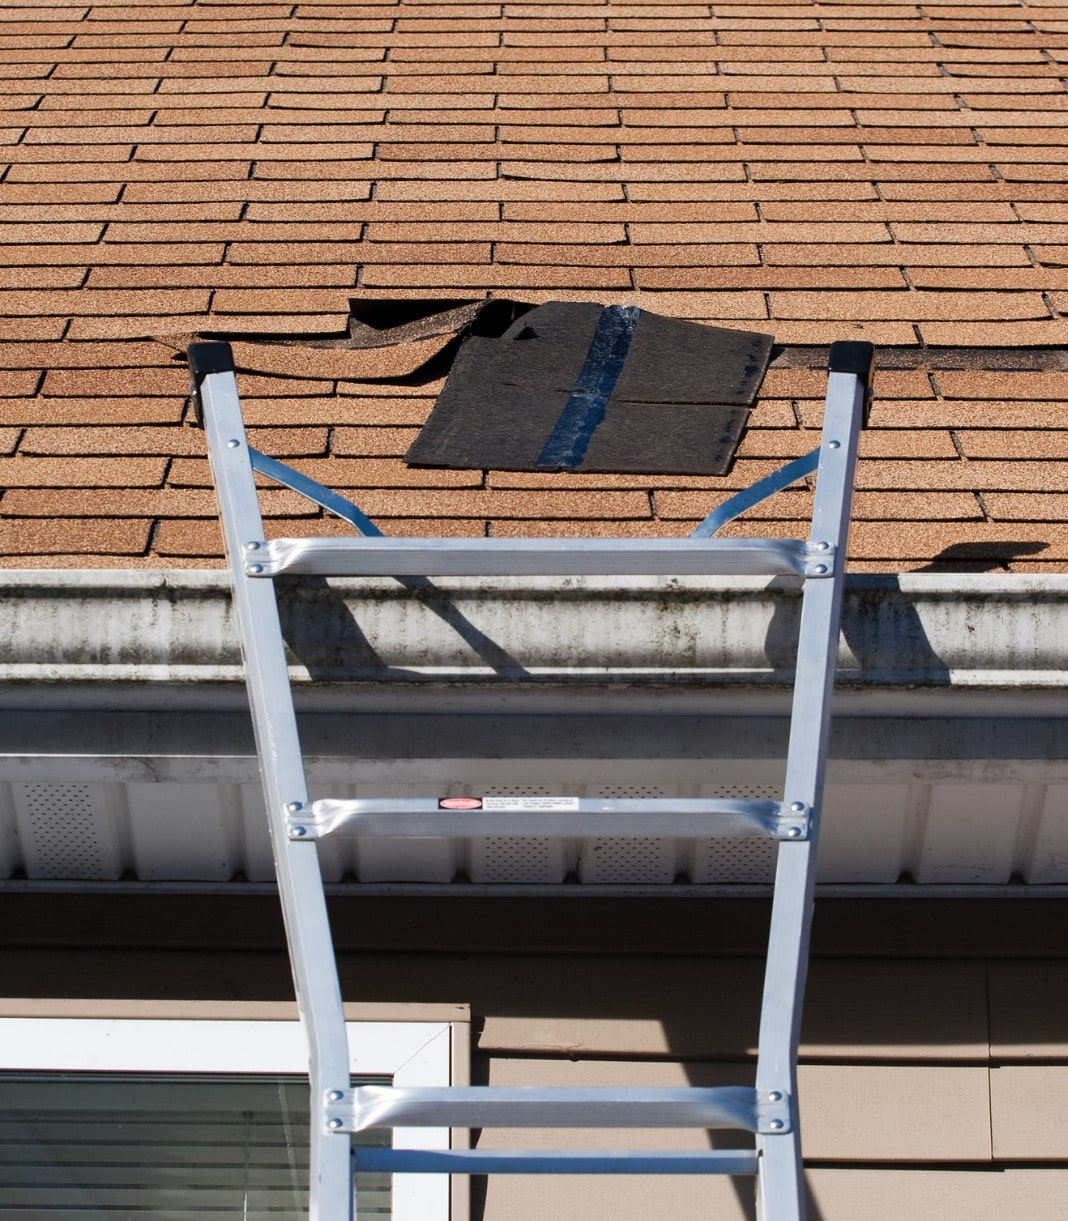 Colombus Ohio Storm Damage Roof Replacement